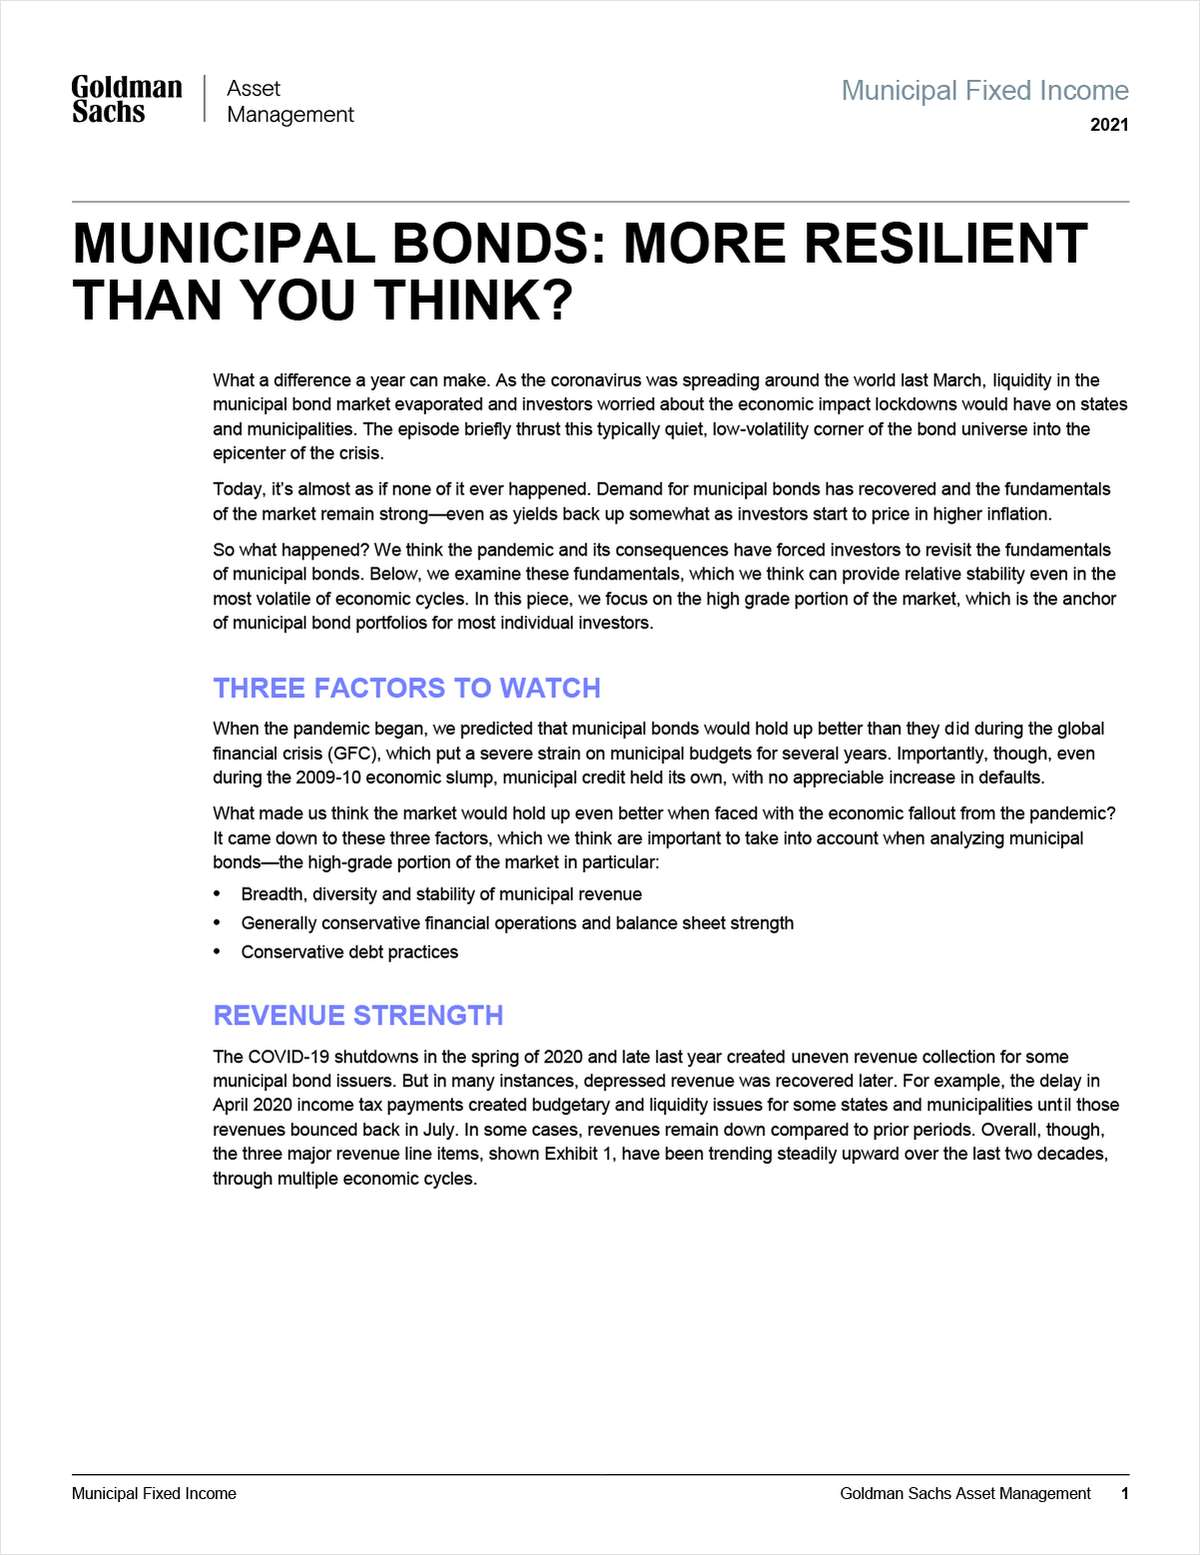 Municipal Bonds: More Resilient Than You Think?